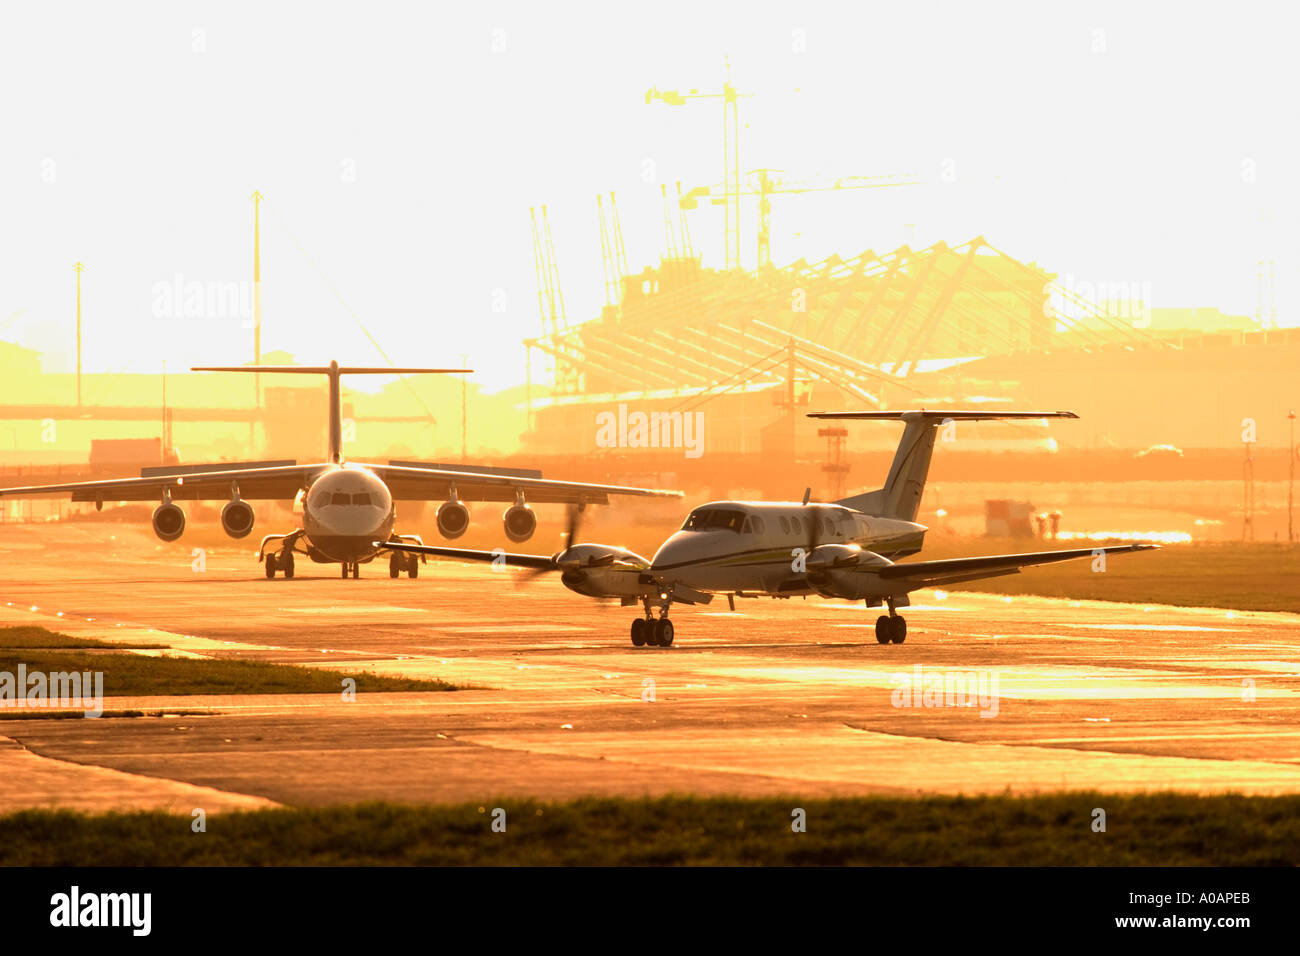 Two airplanes on runway in queue for departure - Stock Image